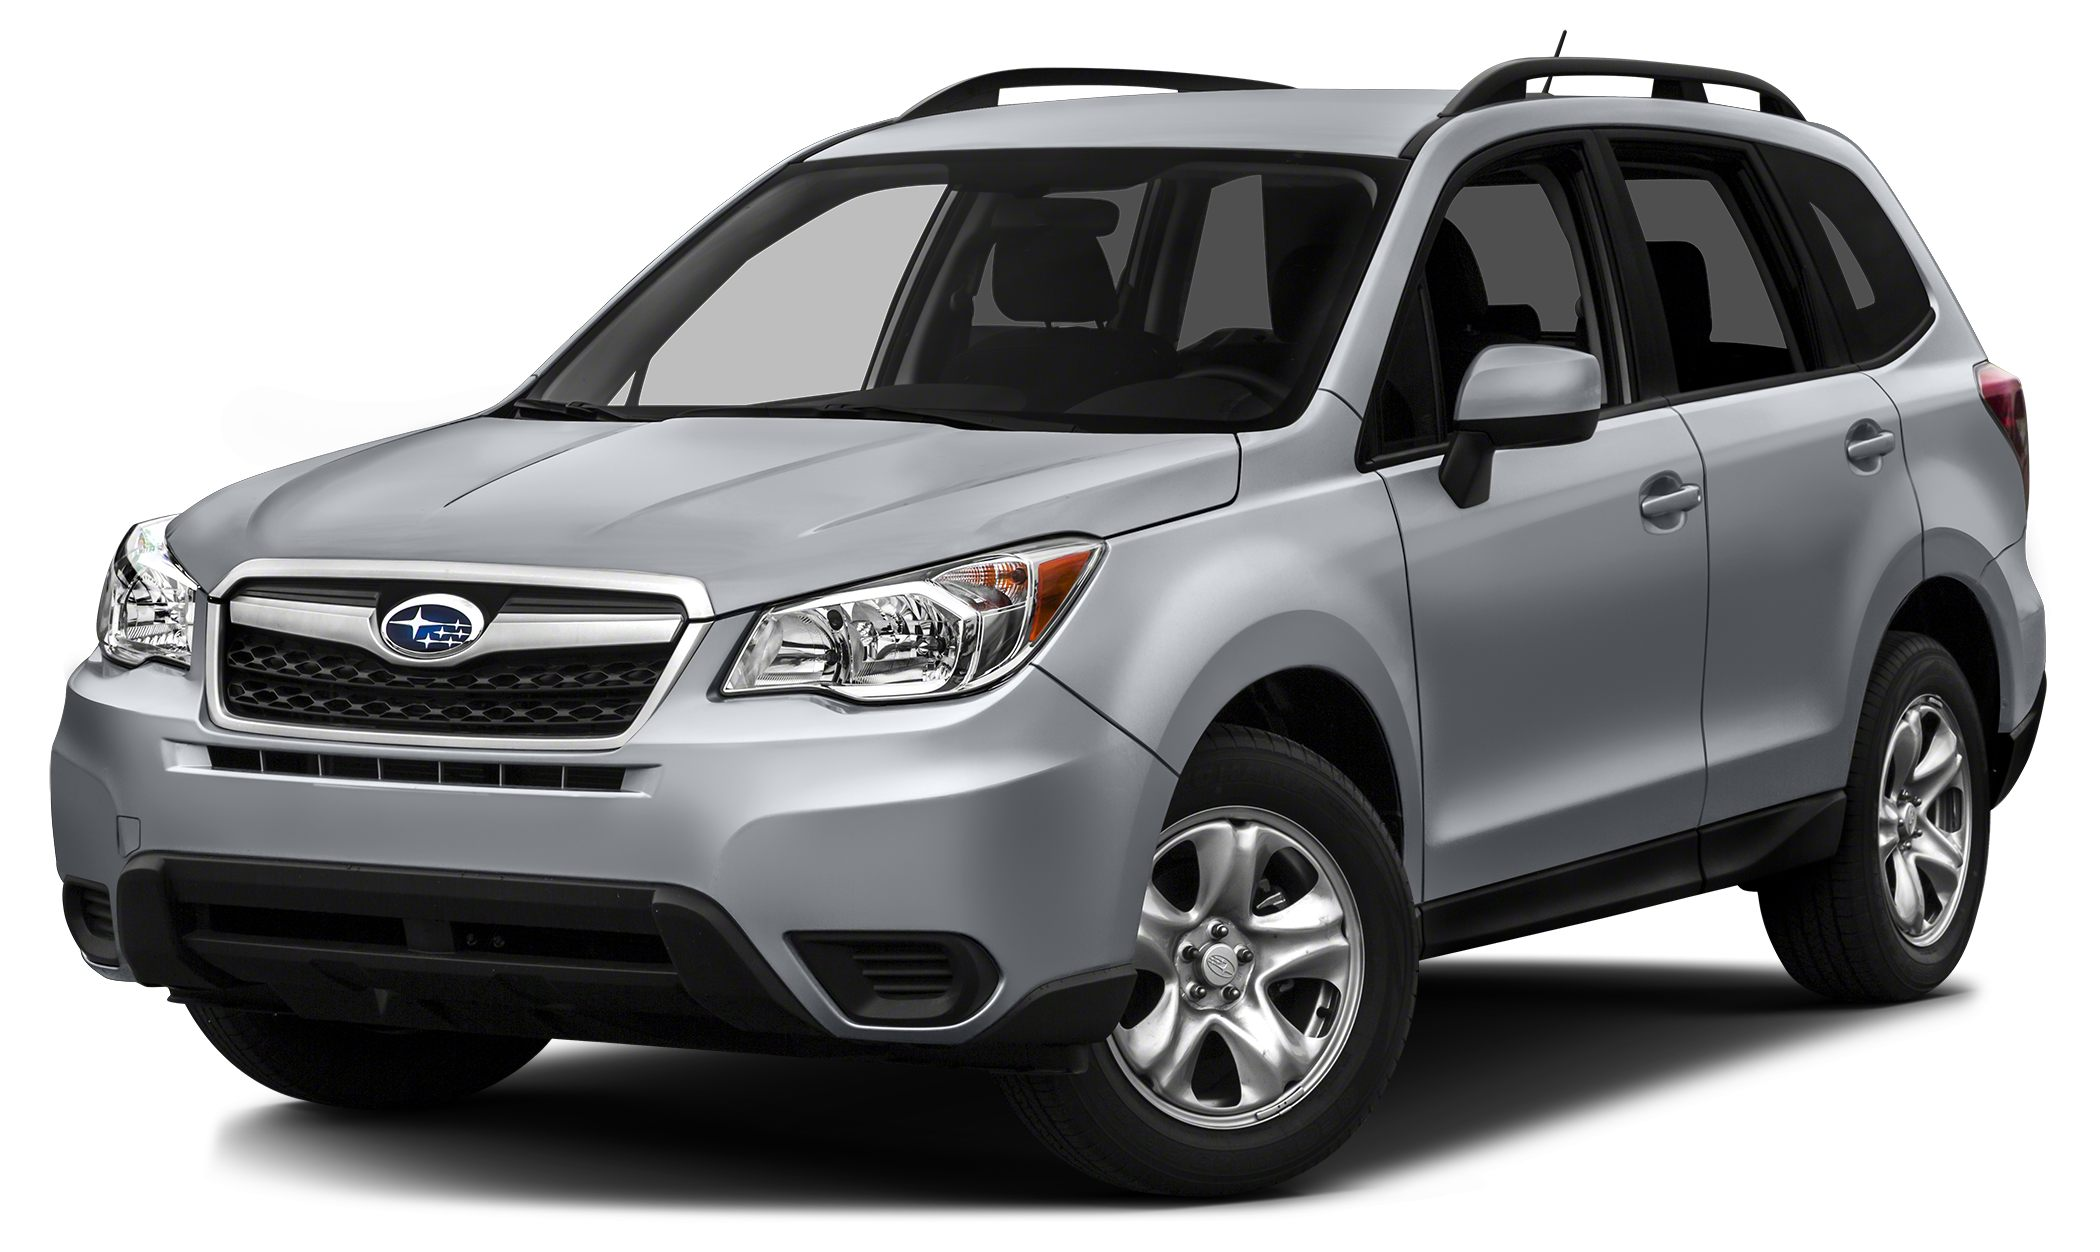 2015 Subaru Forester 25i Premium This 2015 Subaru Forester 4dr CVT 25i Premium PZEV is offered t